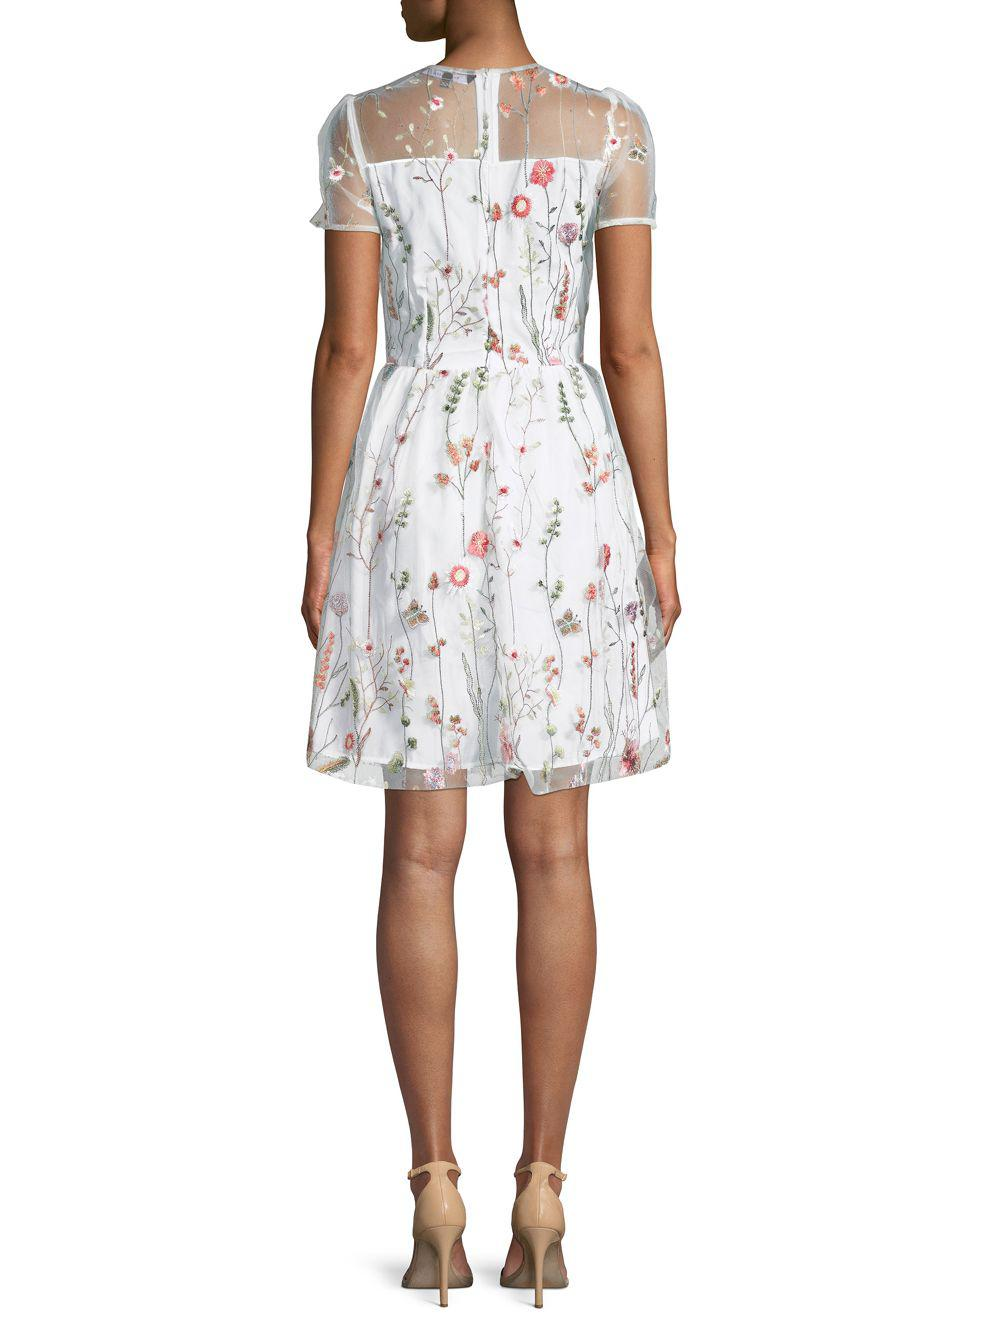 Lyst - Walter Baker Drew Embroidered Floral Lace Dress in White e79ec190d